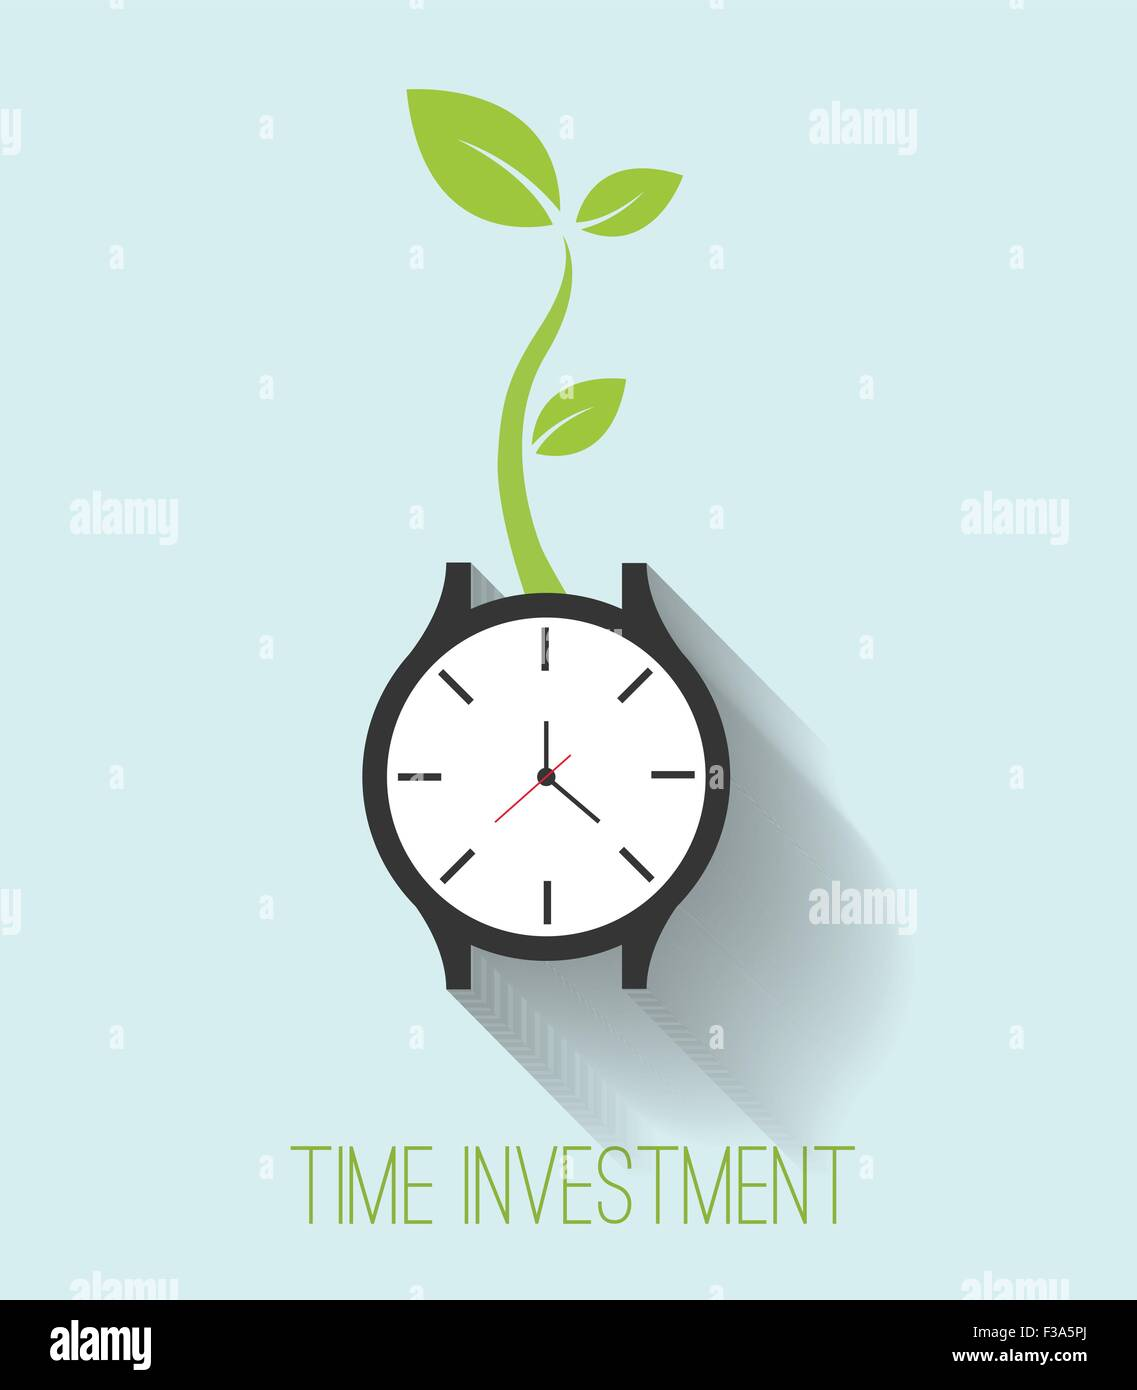 Time investment - Stock Image